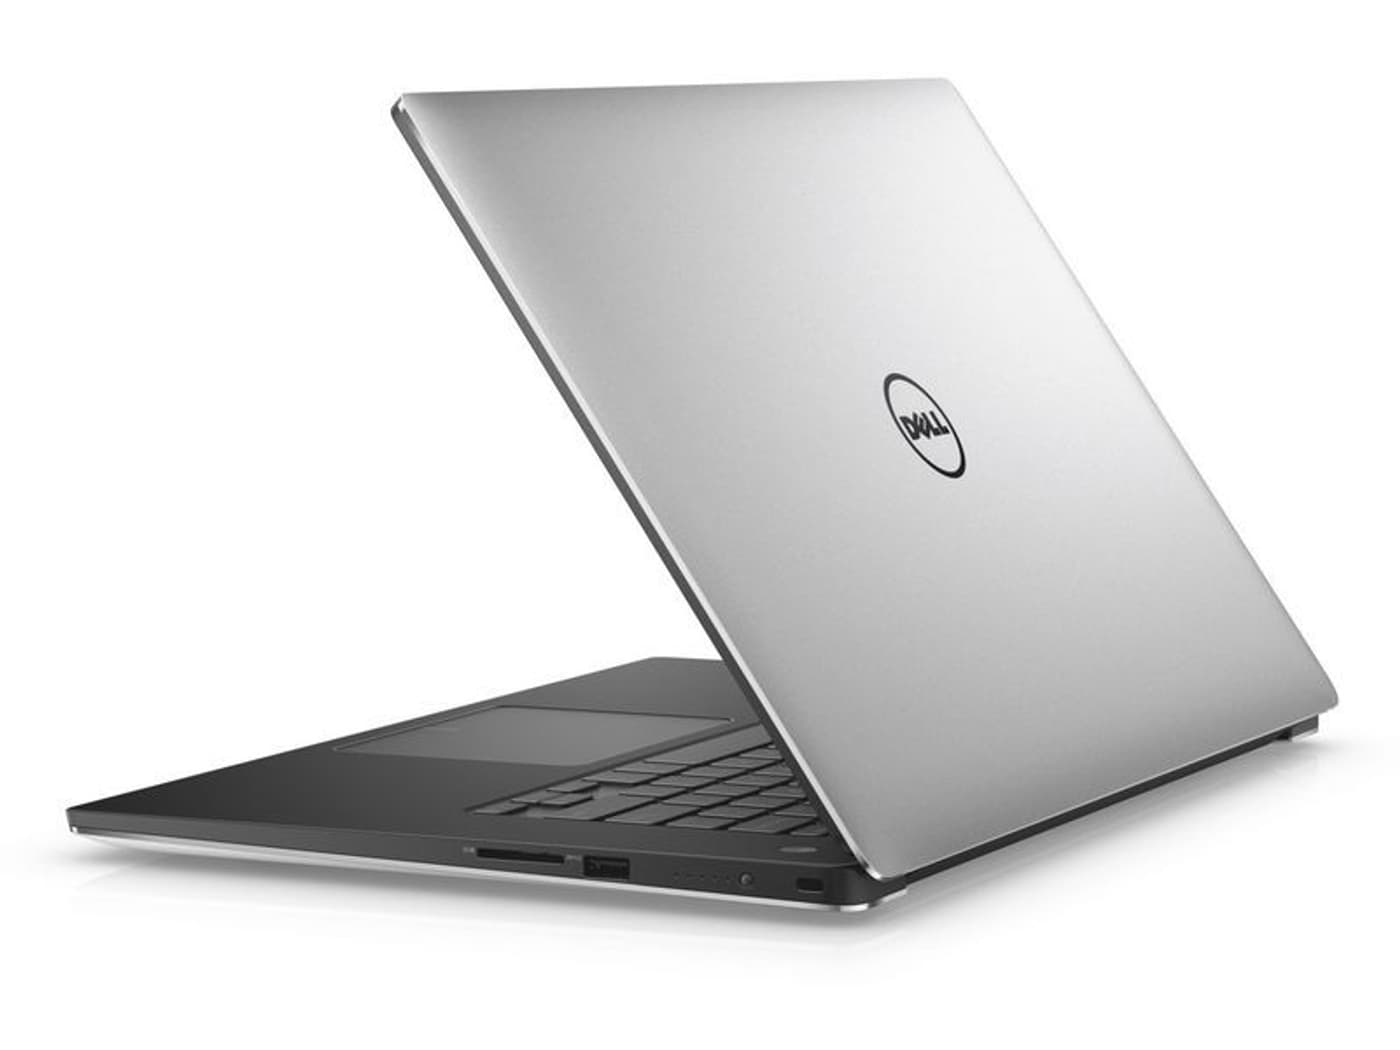 Dell Xps 15 9560 Mg2pv Ordinateur Portable Migros